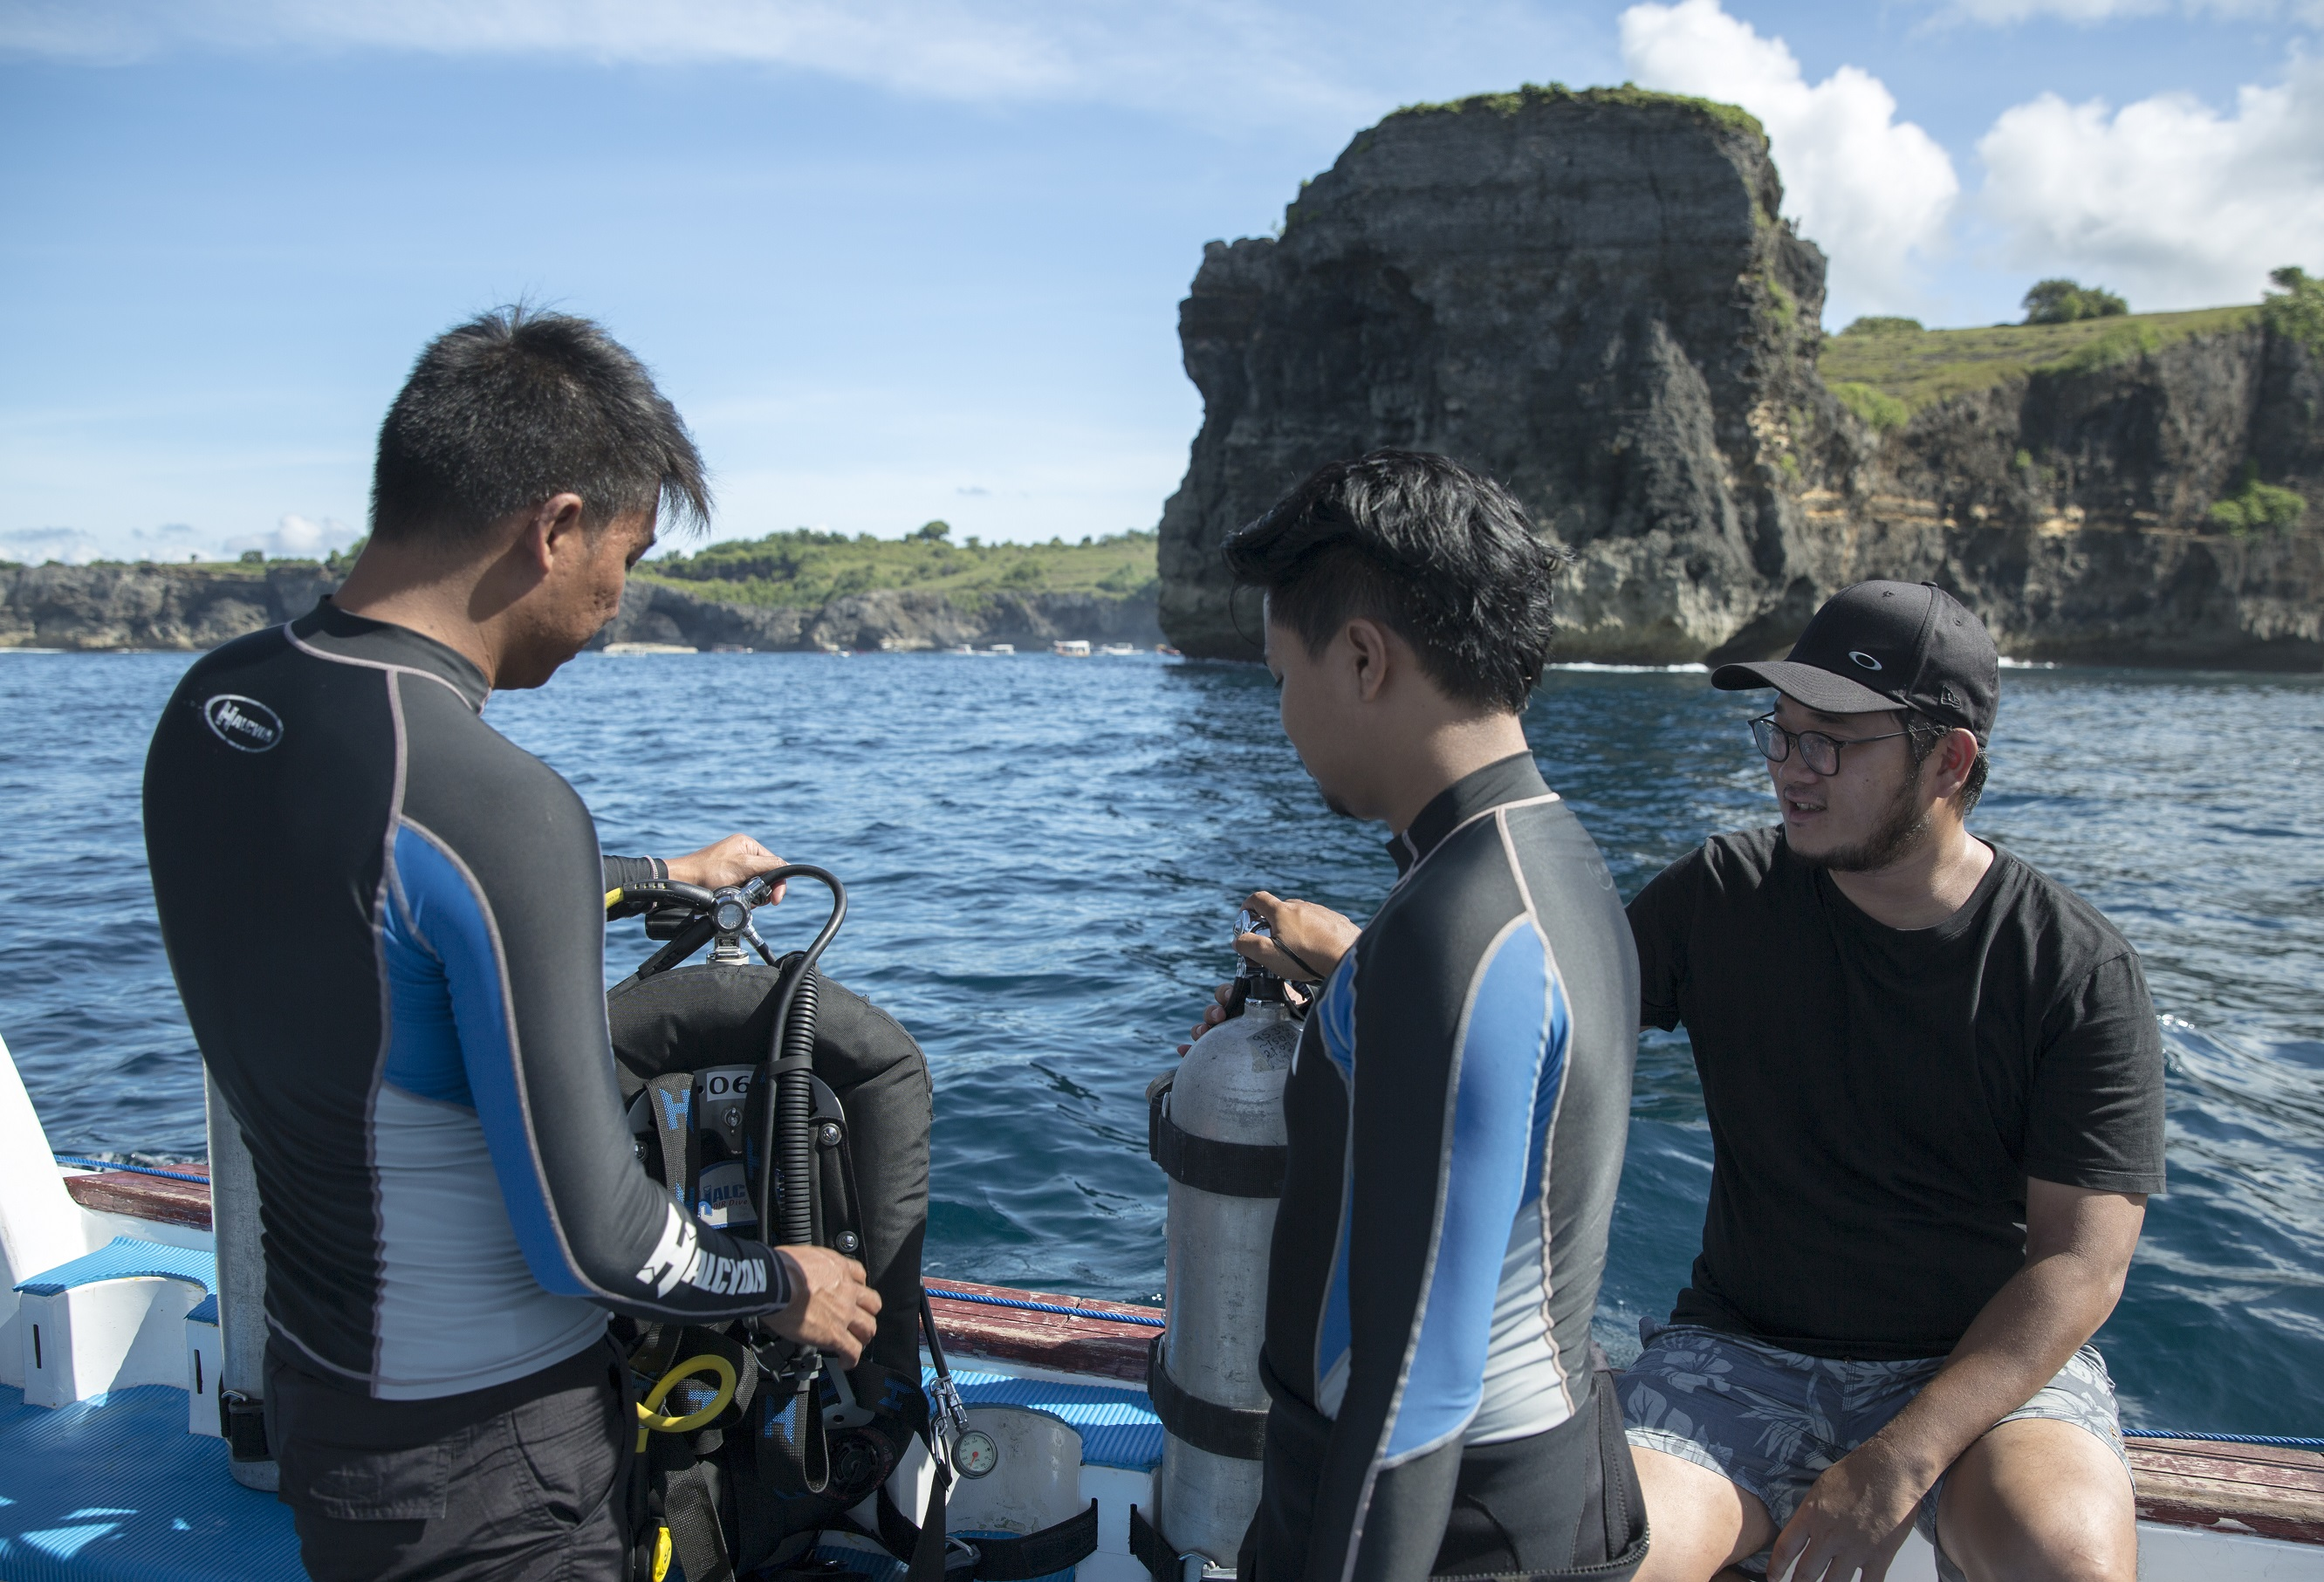 Divers preparing for a boat dive